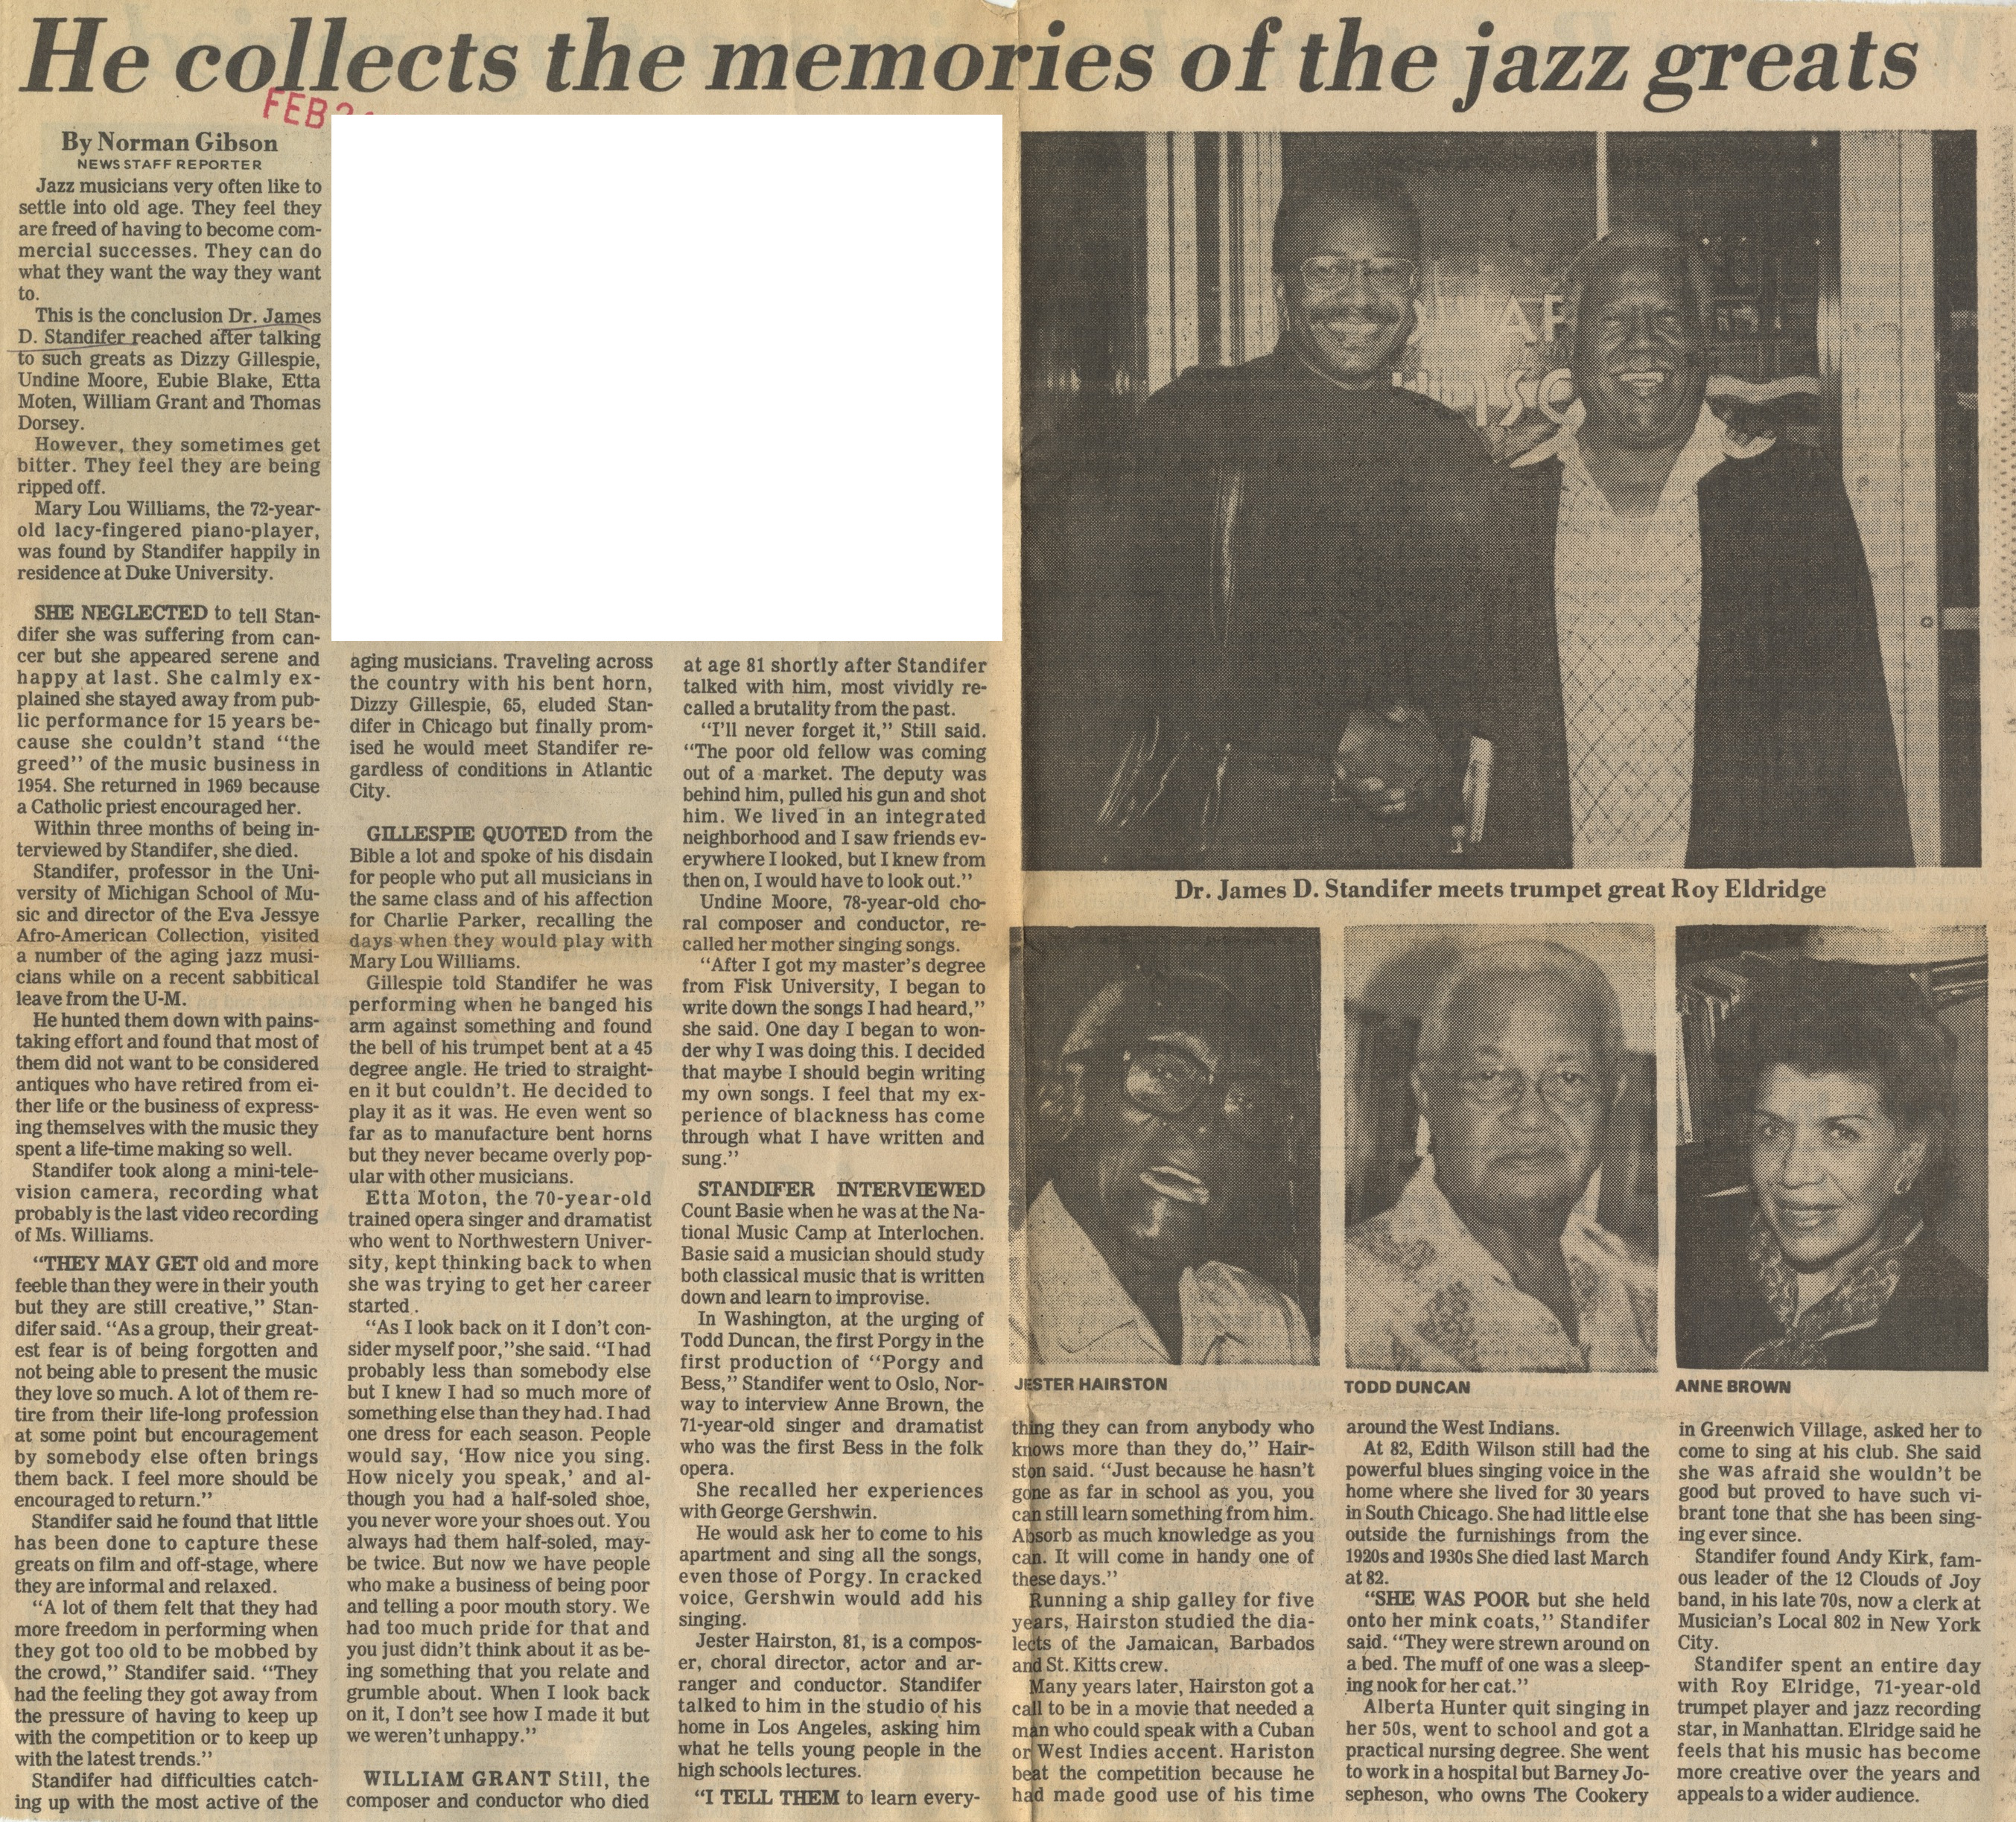 He Collects The Memories Of The Jazz Greats image